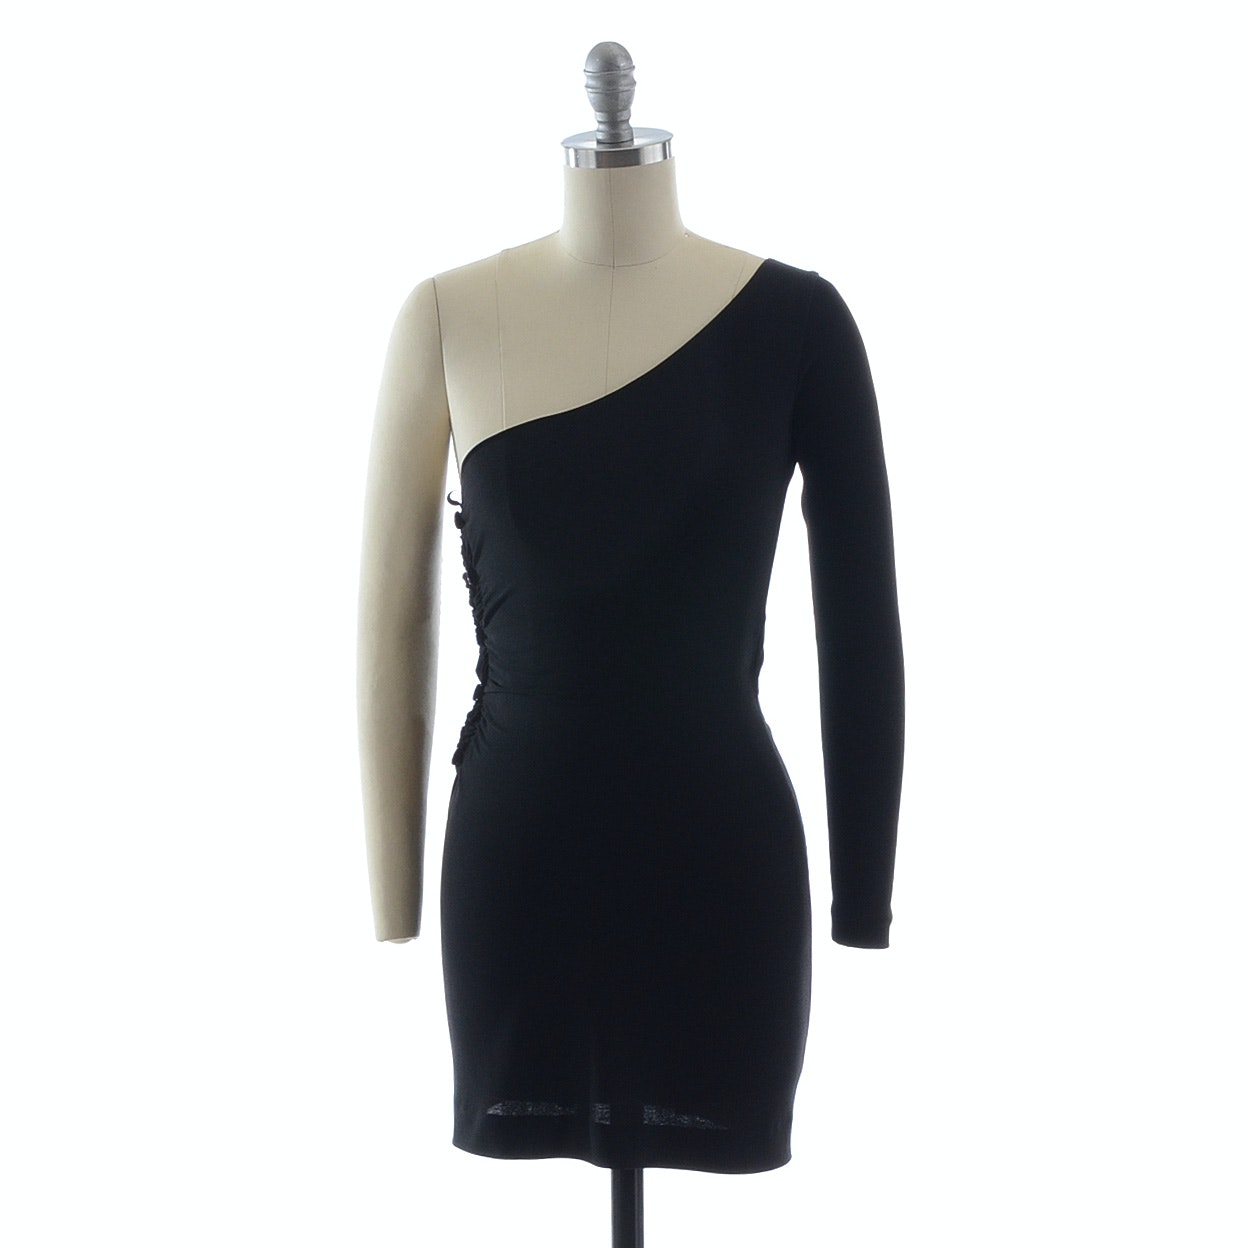 Donna Karan of New York Black One Shoulder Ruched Cocktail Dress